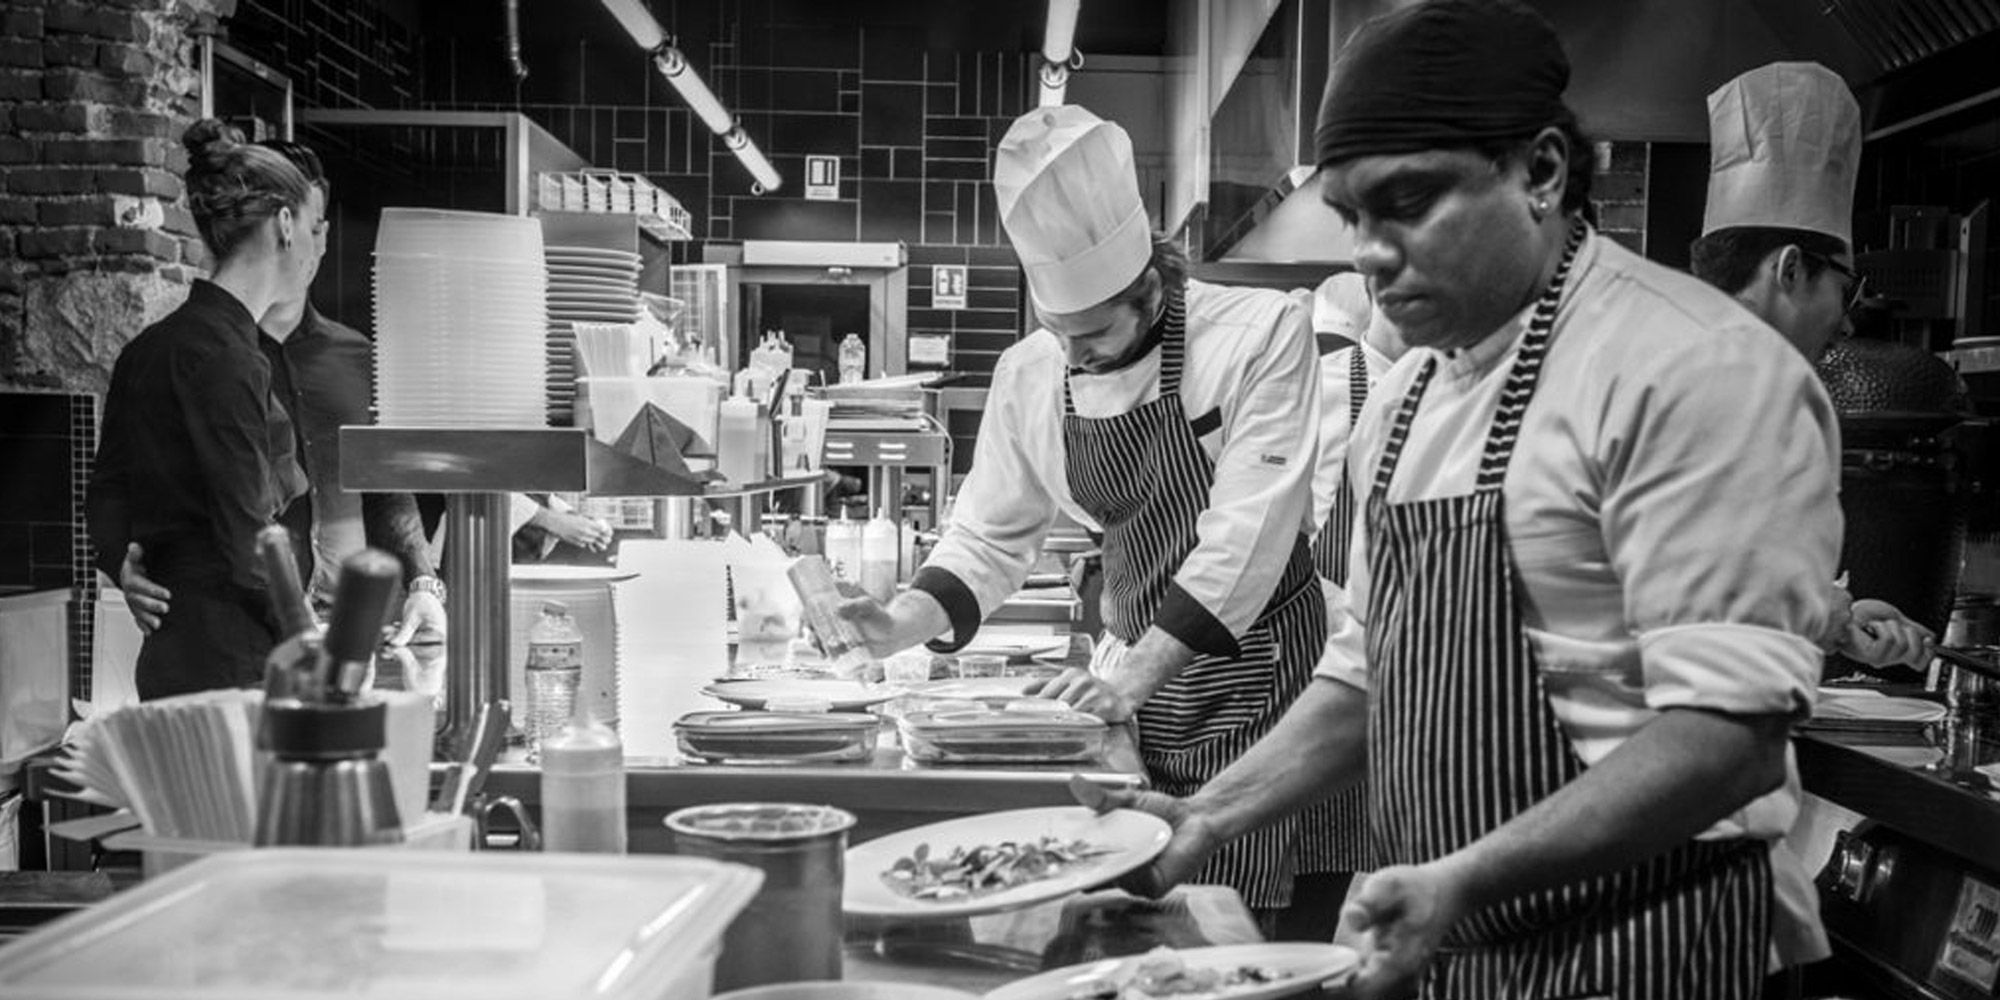 Civil Eats: After Bourdain, Mobilizing to Create a Safety Net for Chefs